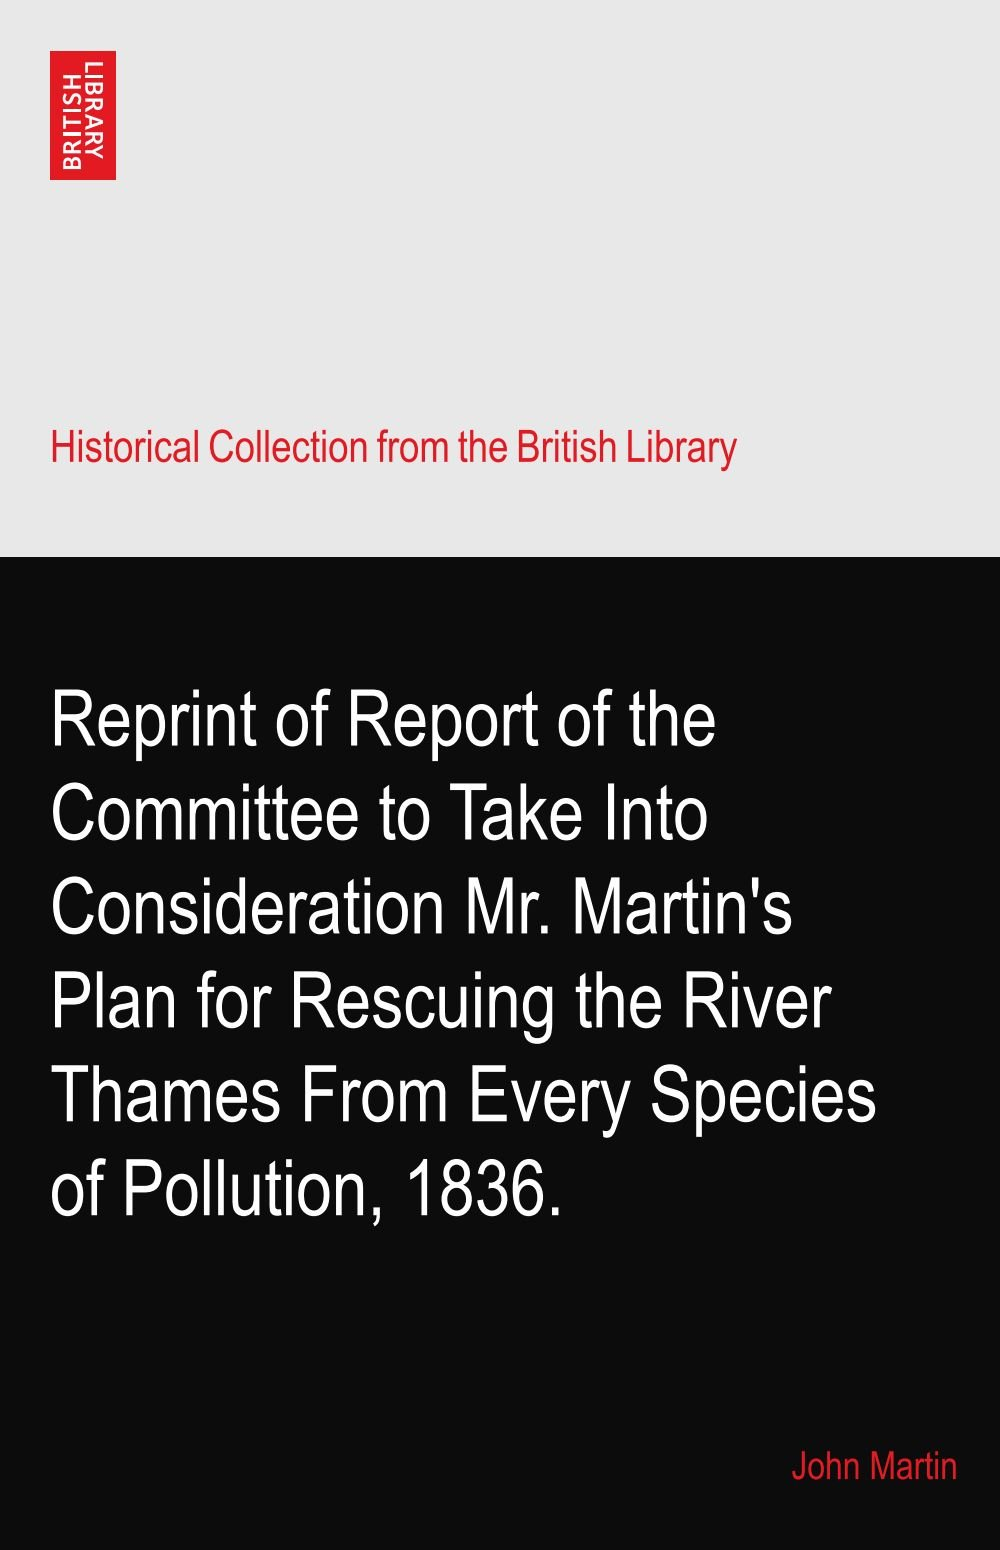 Read Online Reprint of Report of the Committee to Take Into Consideration Mr. Martin's Plan for Rescuing the River Thames From Every Species of Pollution, 1836. ebook